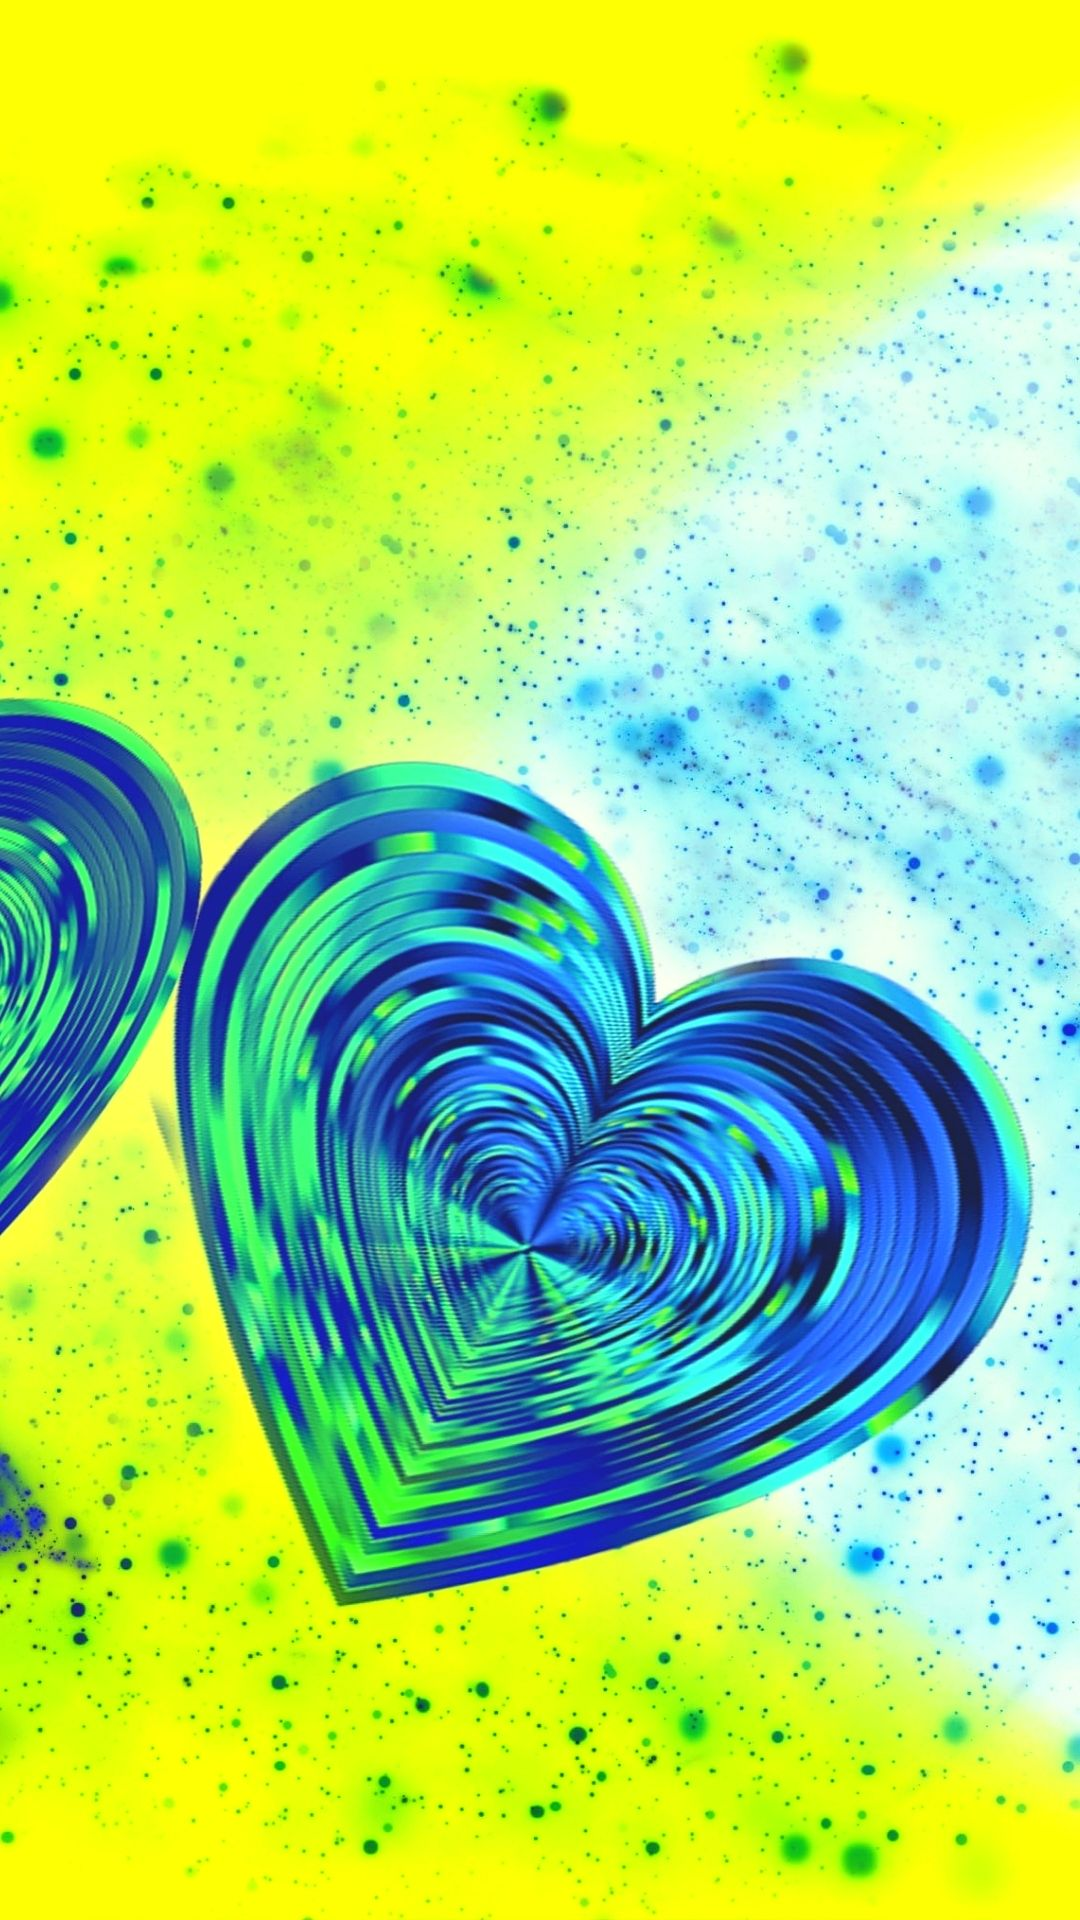 Heart Abstract Hd Wallpapers 1080x1920 Cute Mobile Wallpapers Abstract Beautiful Backgrounds